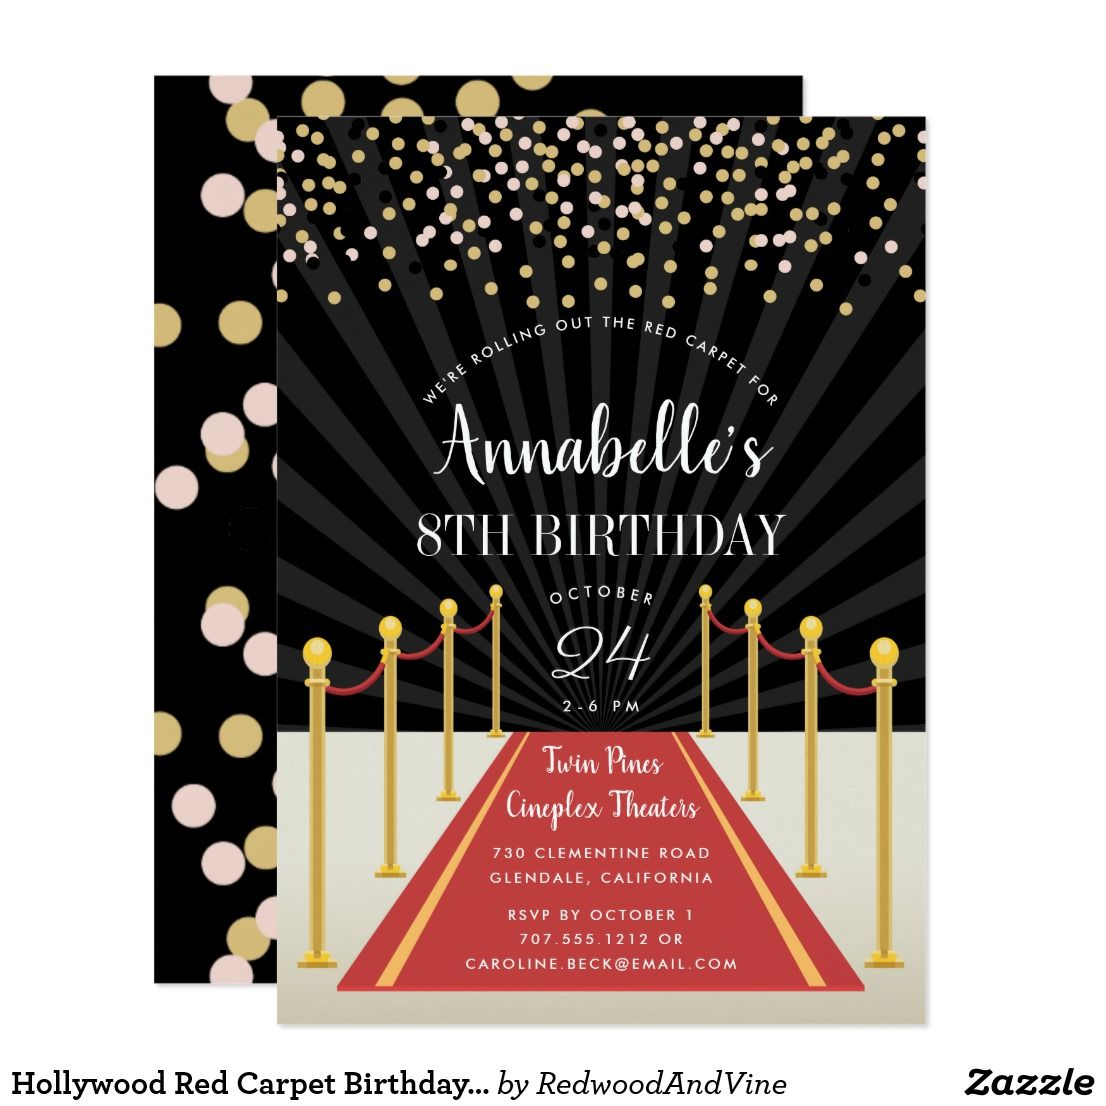 Hollywood Red Carpet Birthday Party Invitation | Hollywood red ...